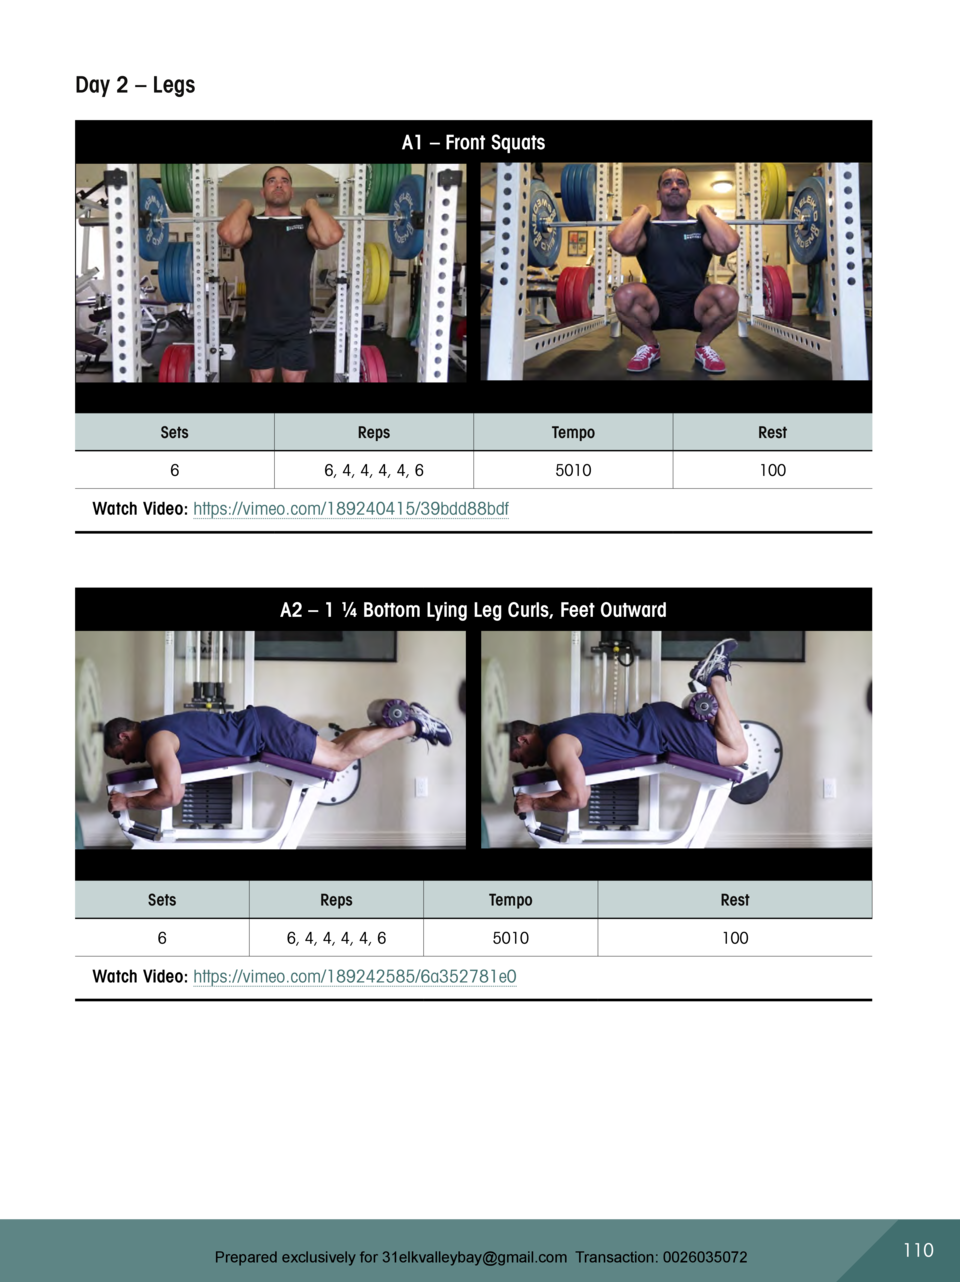 Day 2     Legs A1     Front Squats  Sets  Reps  Tempo  Rest  6  6, 4, 4, 4, 4, 6  5010  100  Watch Video  https   vimeo.co...